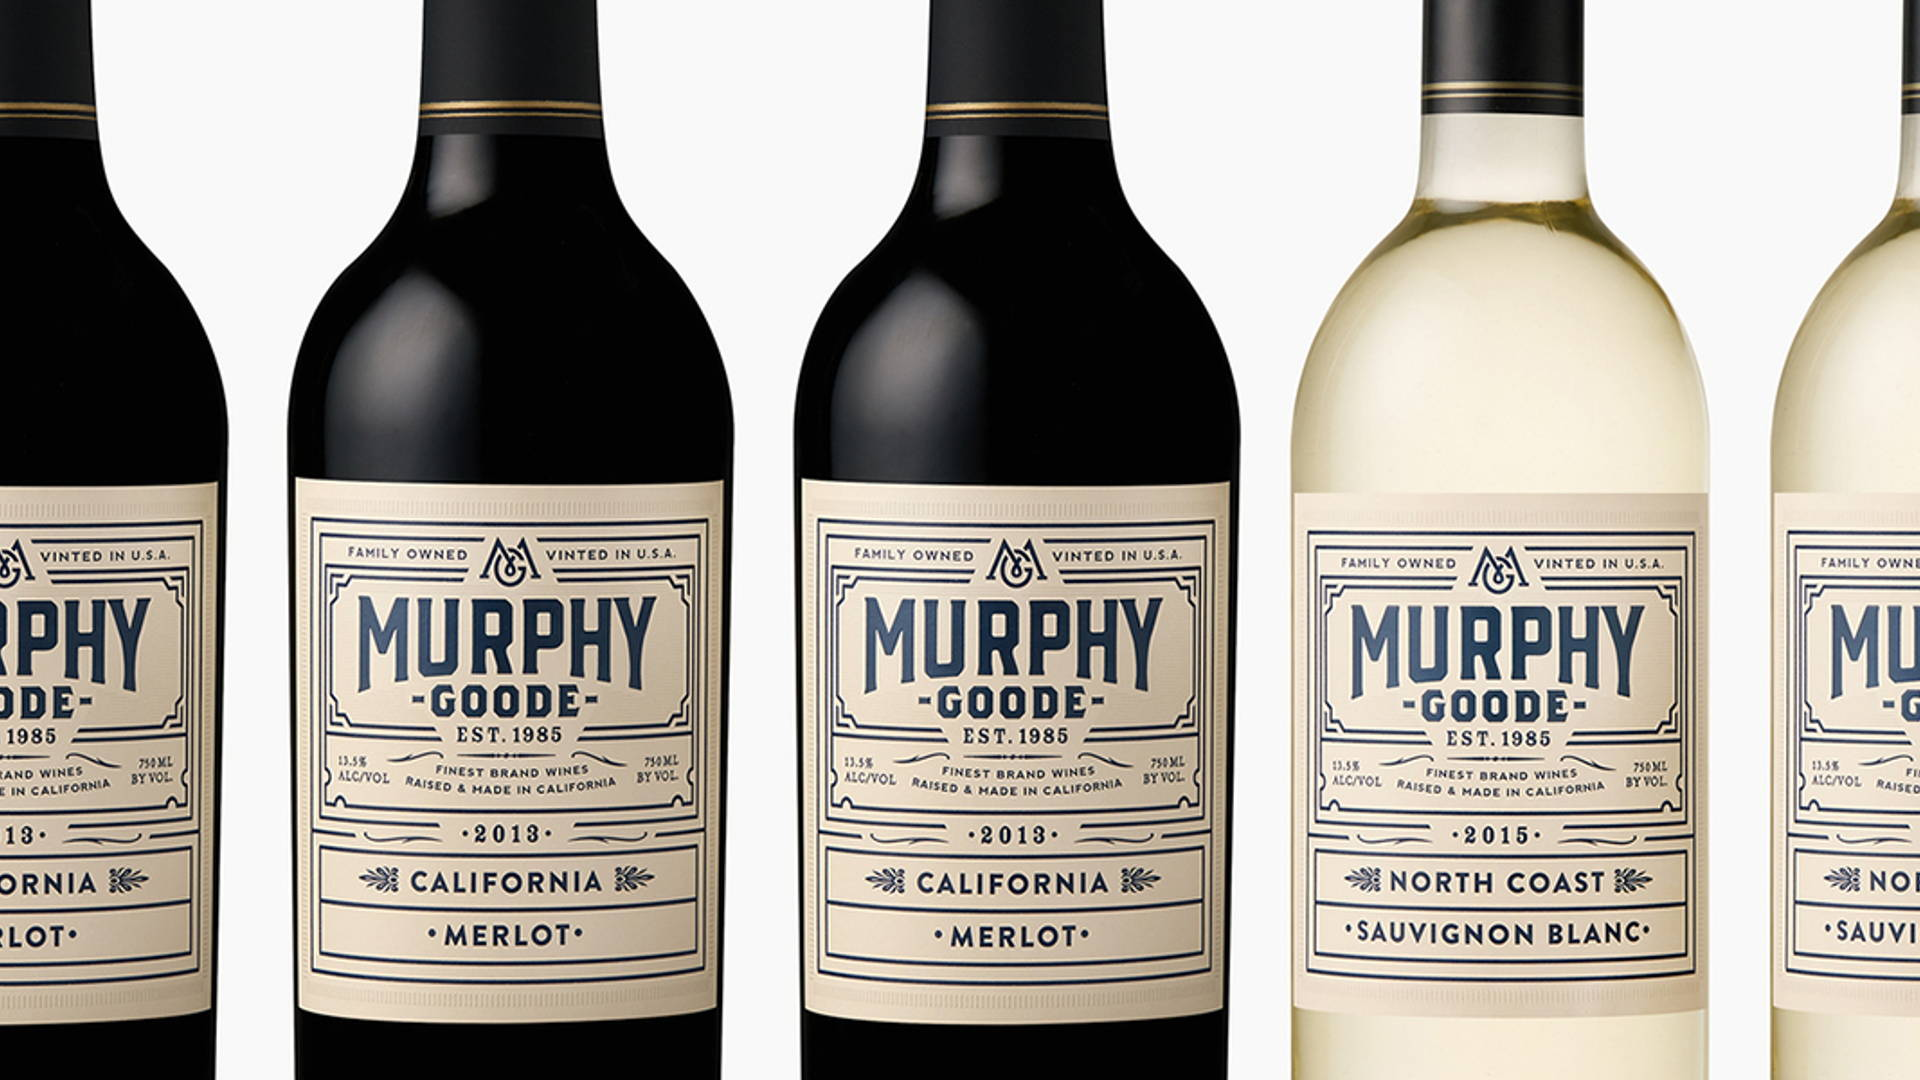 Murphy-Goode | Dieline - Design, Branding & Packaging Inspiration